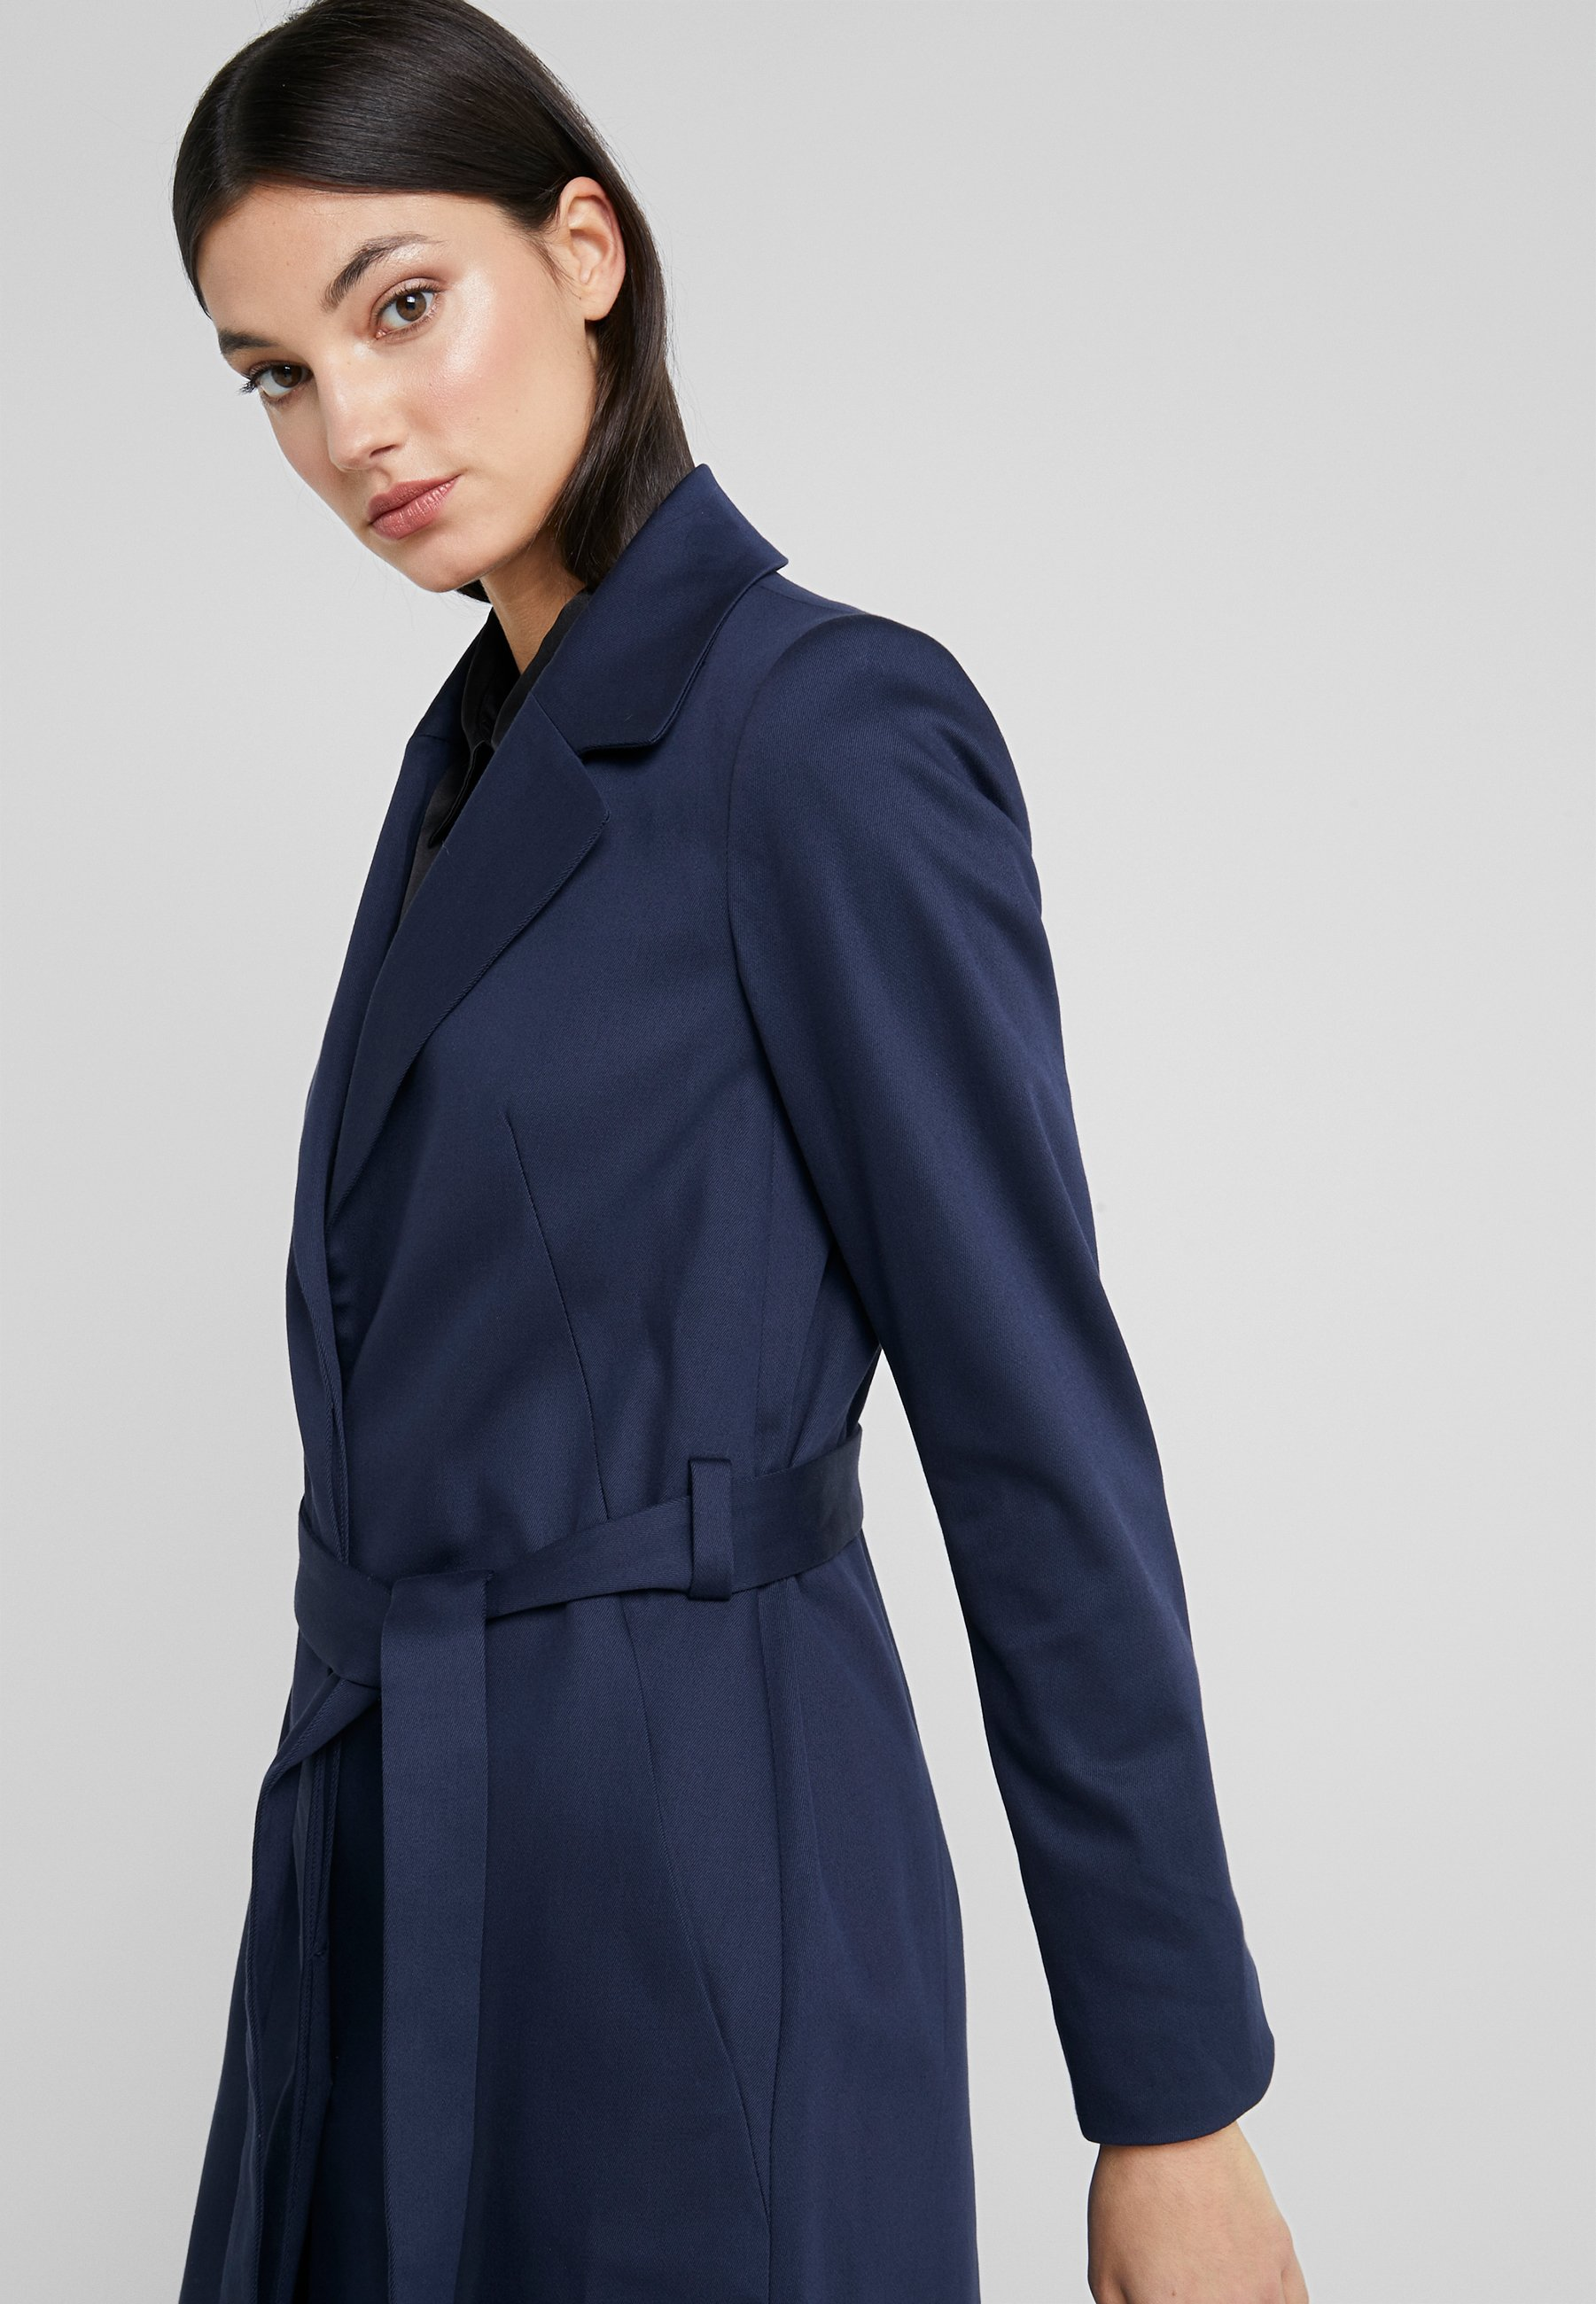 DRYKORN PLYMOUTH - Trench - navy - Manteaux Femme l9E6o